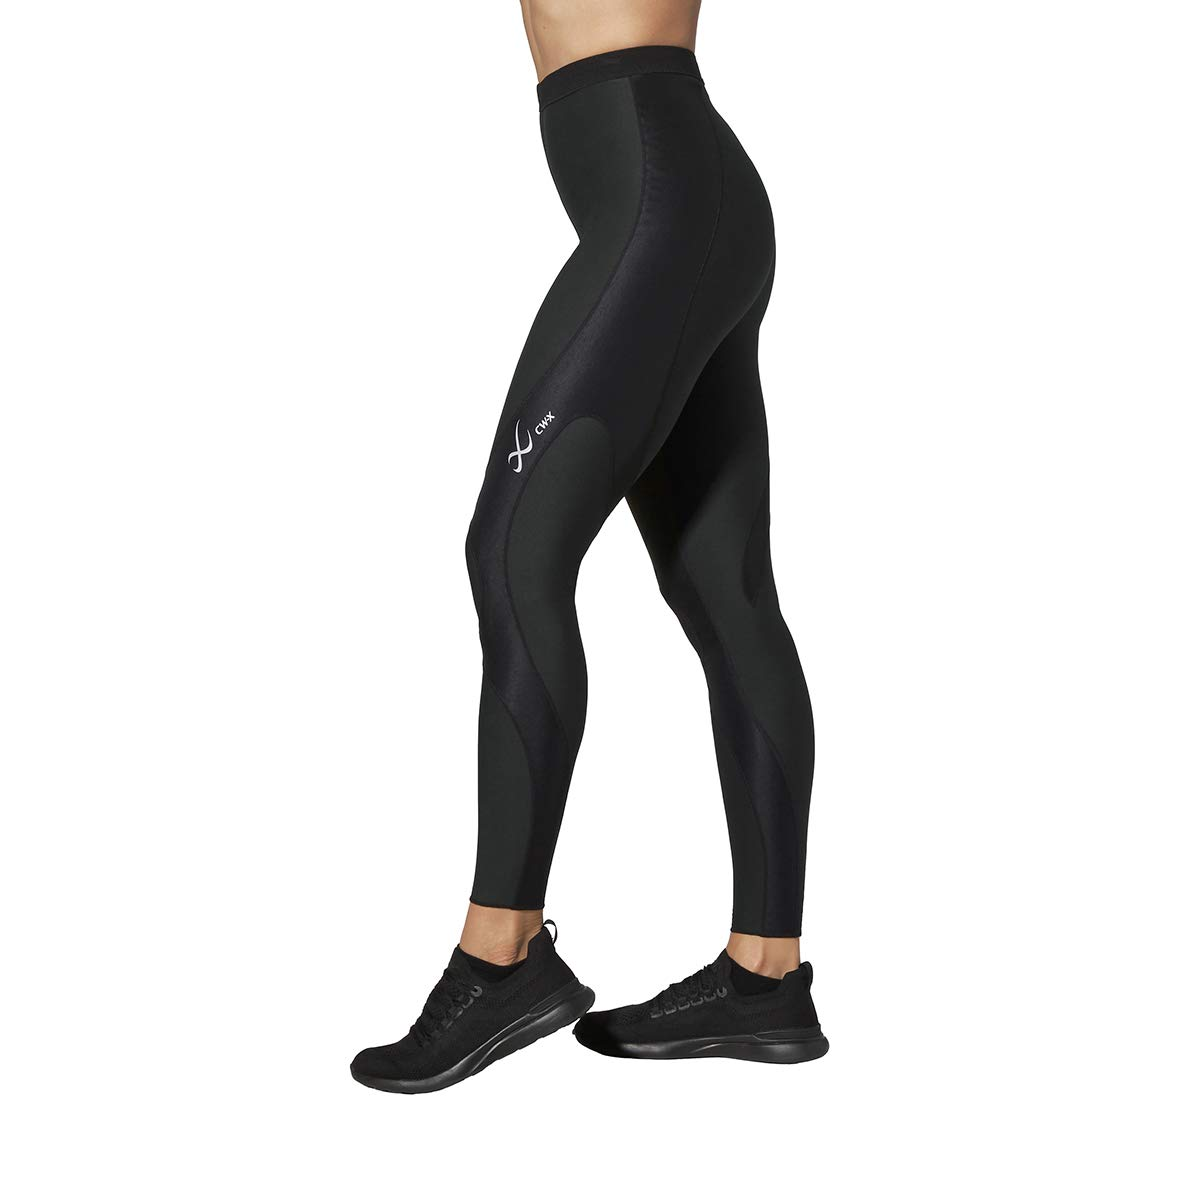 CW-X Expert 2.0 Insulator Joint Support Compression Tight